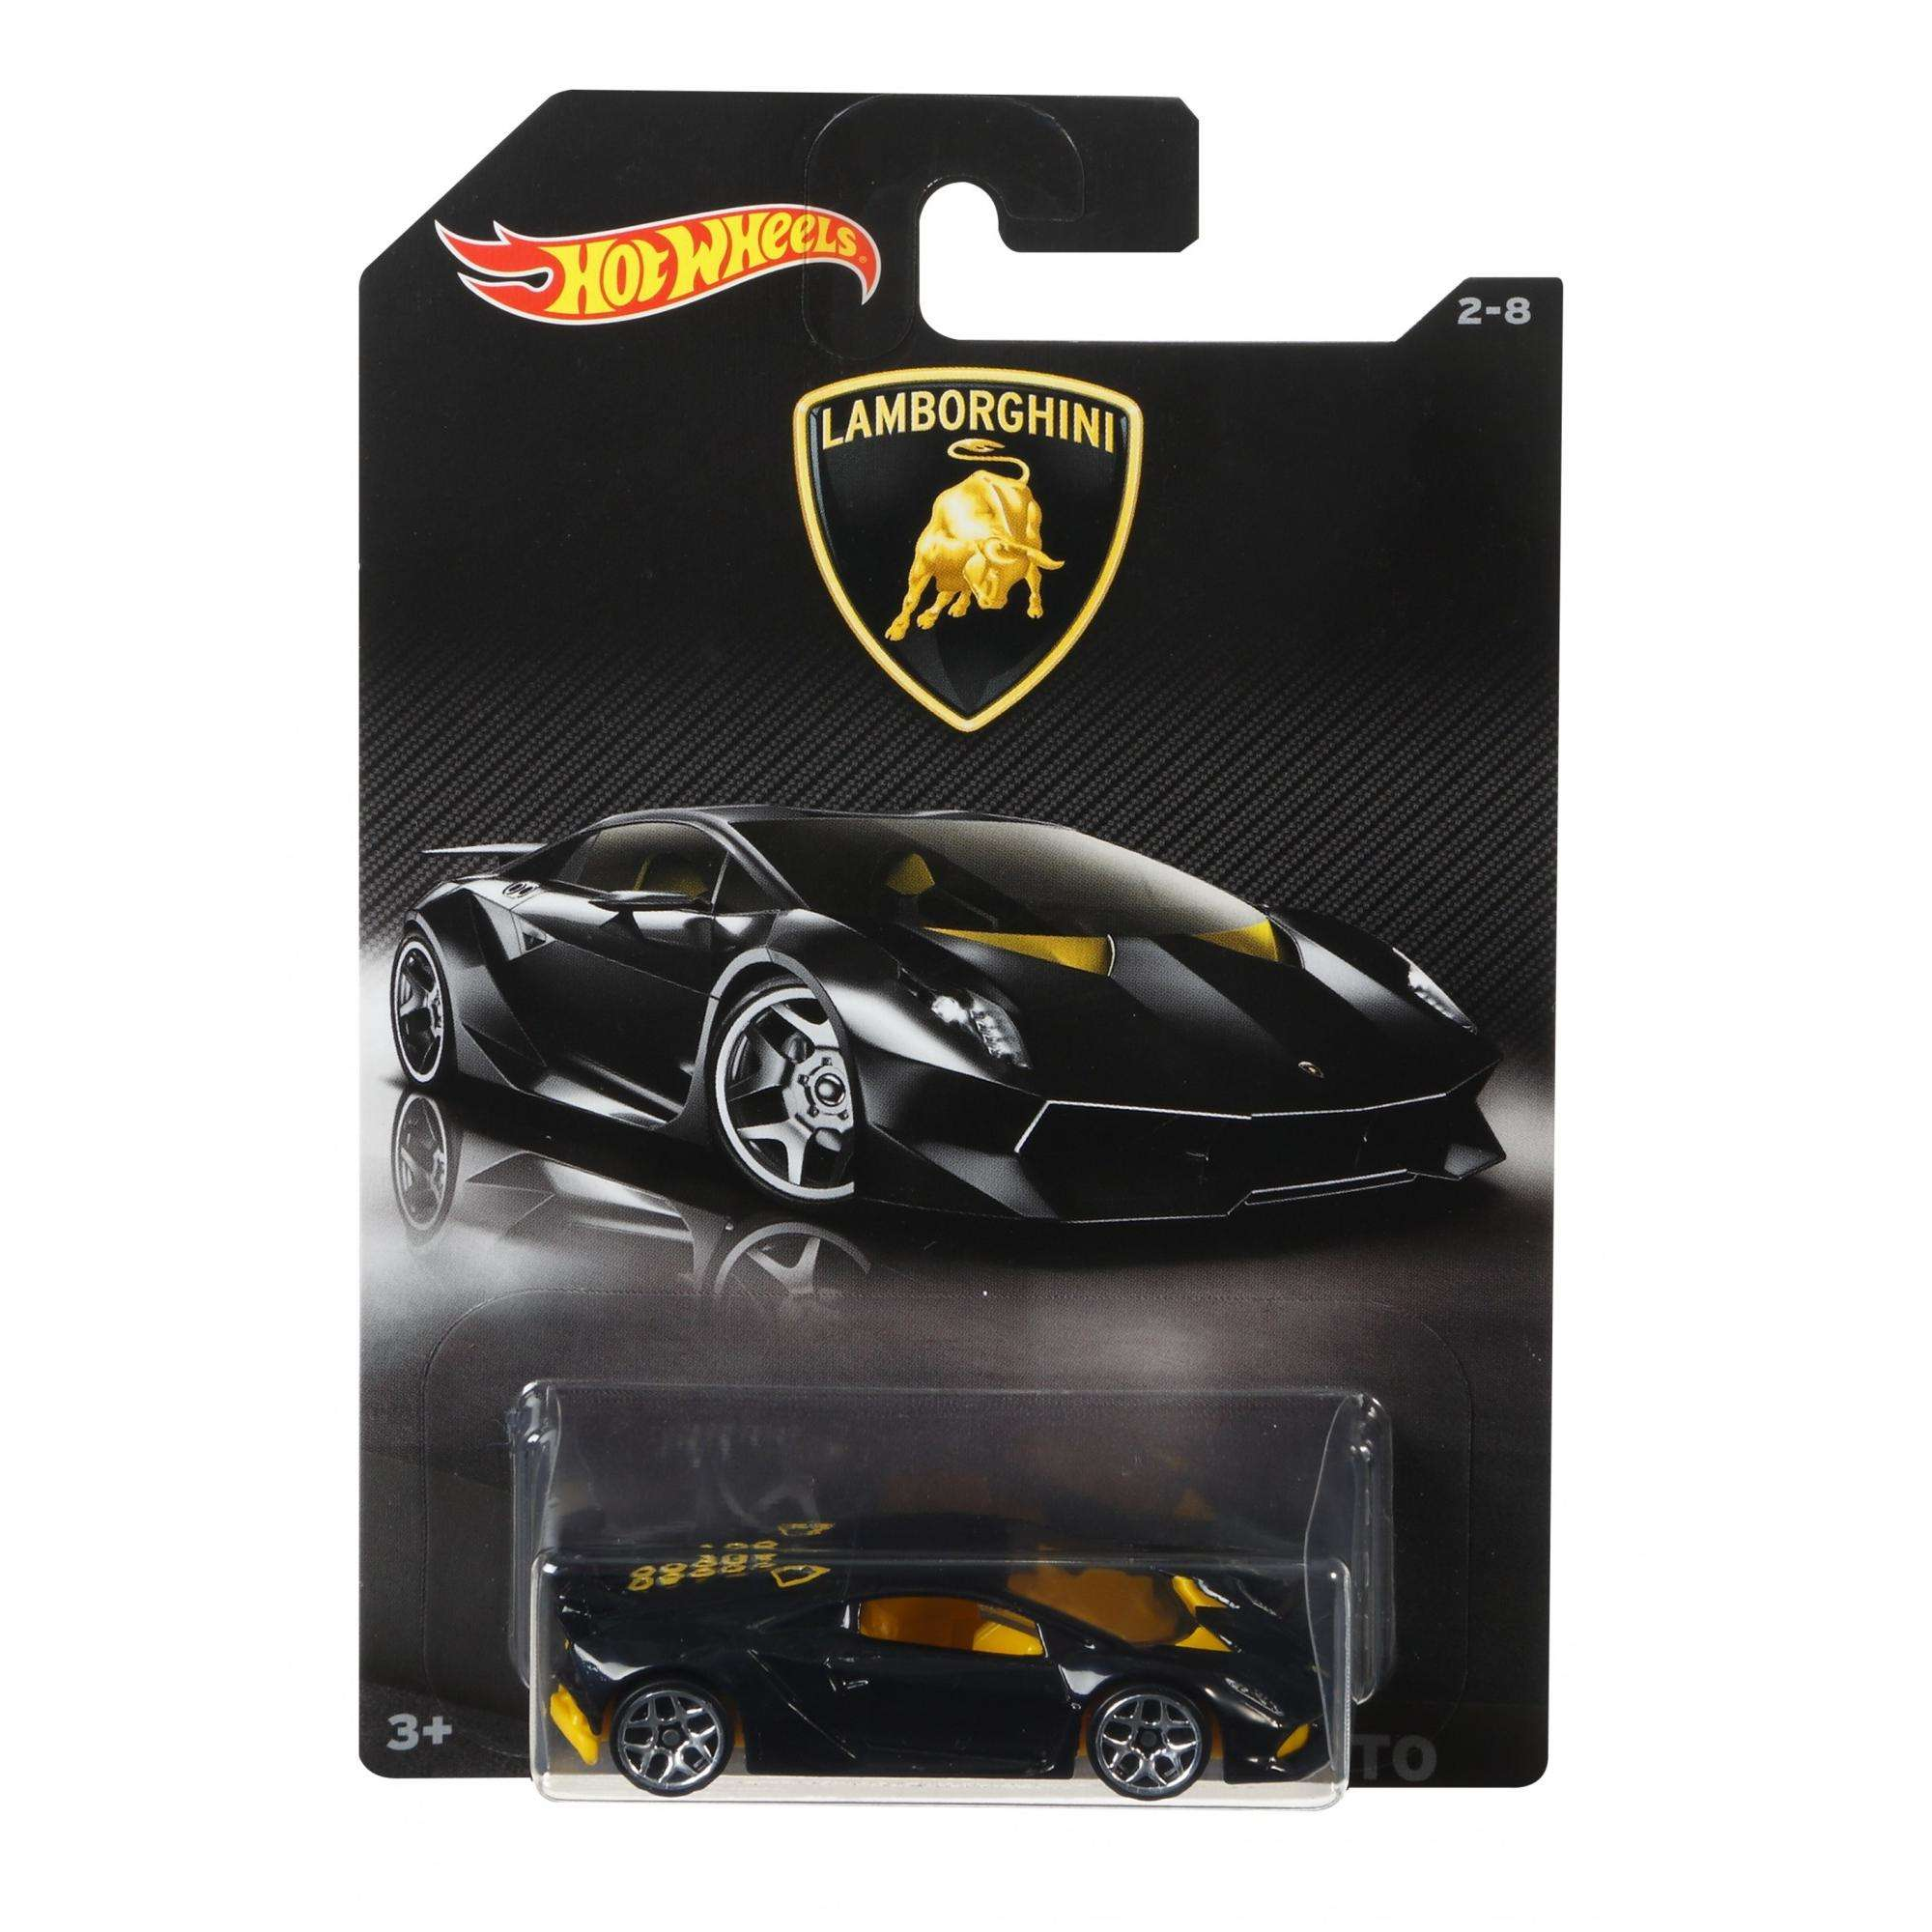 mattel hot wheels hw lamborghini bsc car - walmart